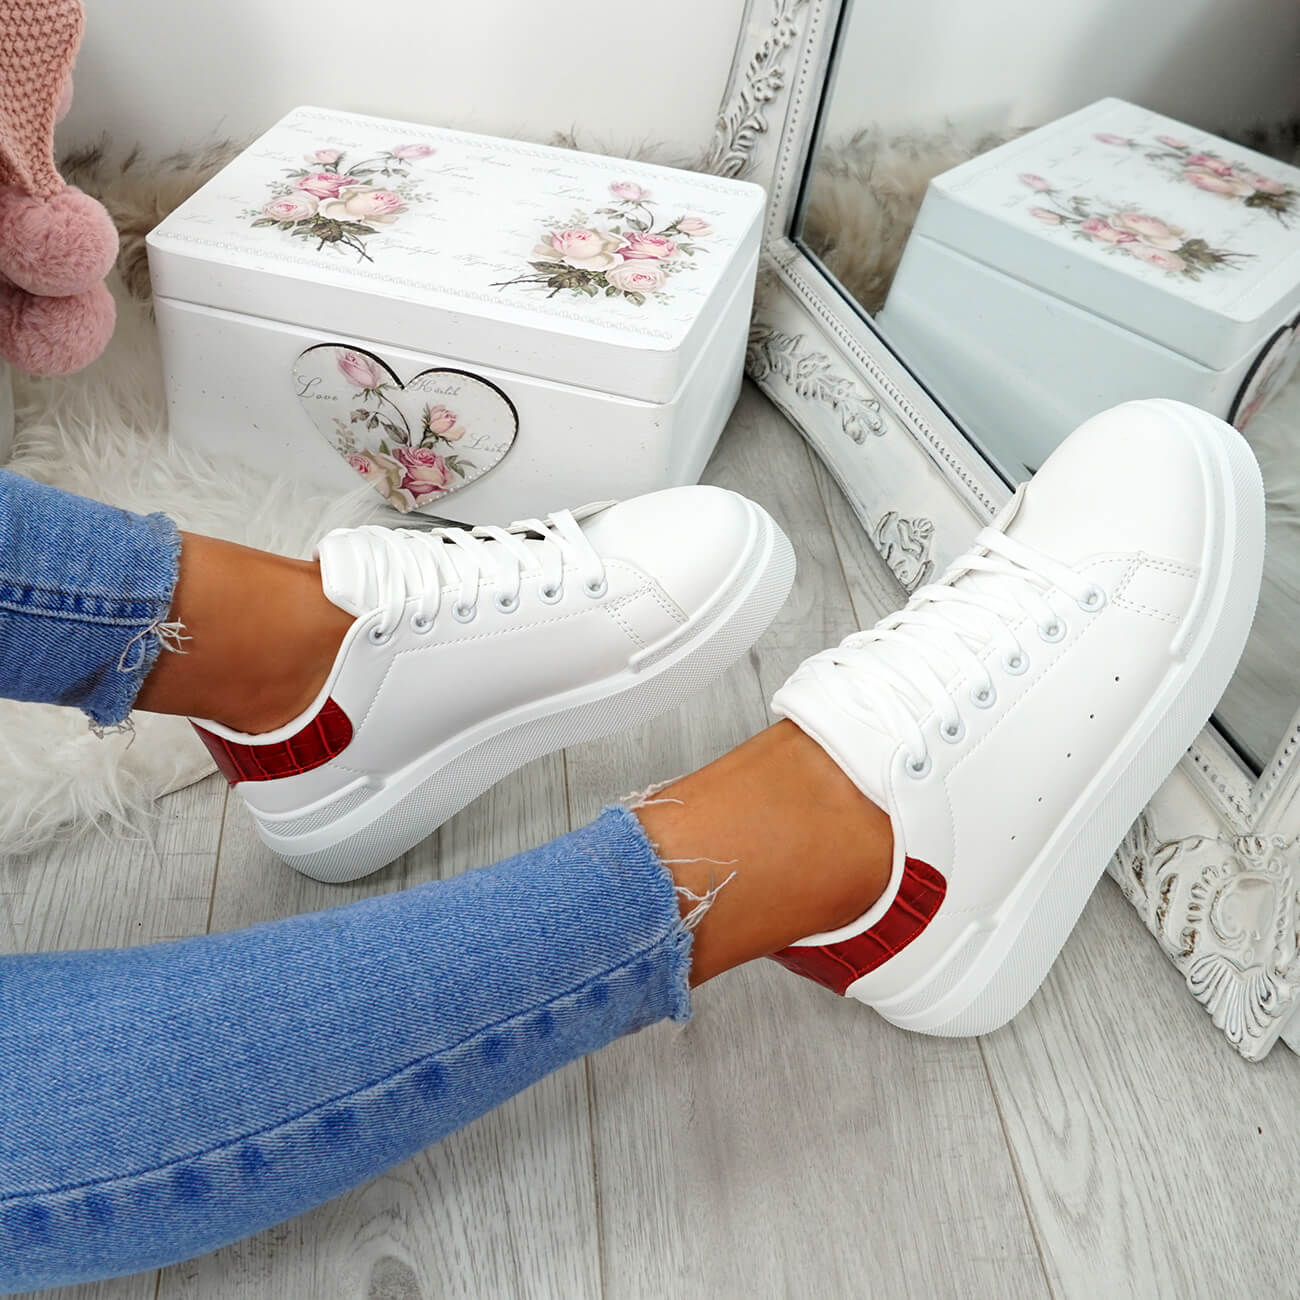 WOMENS-LADIES-LACE-UP-PLIMSOLL-SNEAKERS-CROC-SNAKE-TRAINERS-CASUAL-SHOES-SIZE thumbnail 64